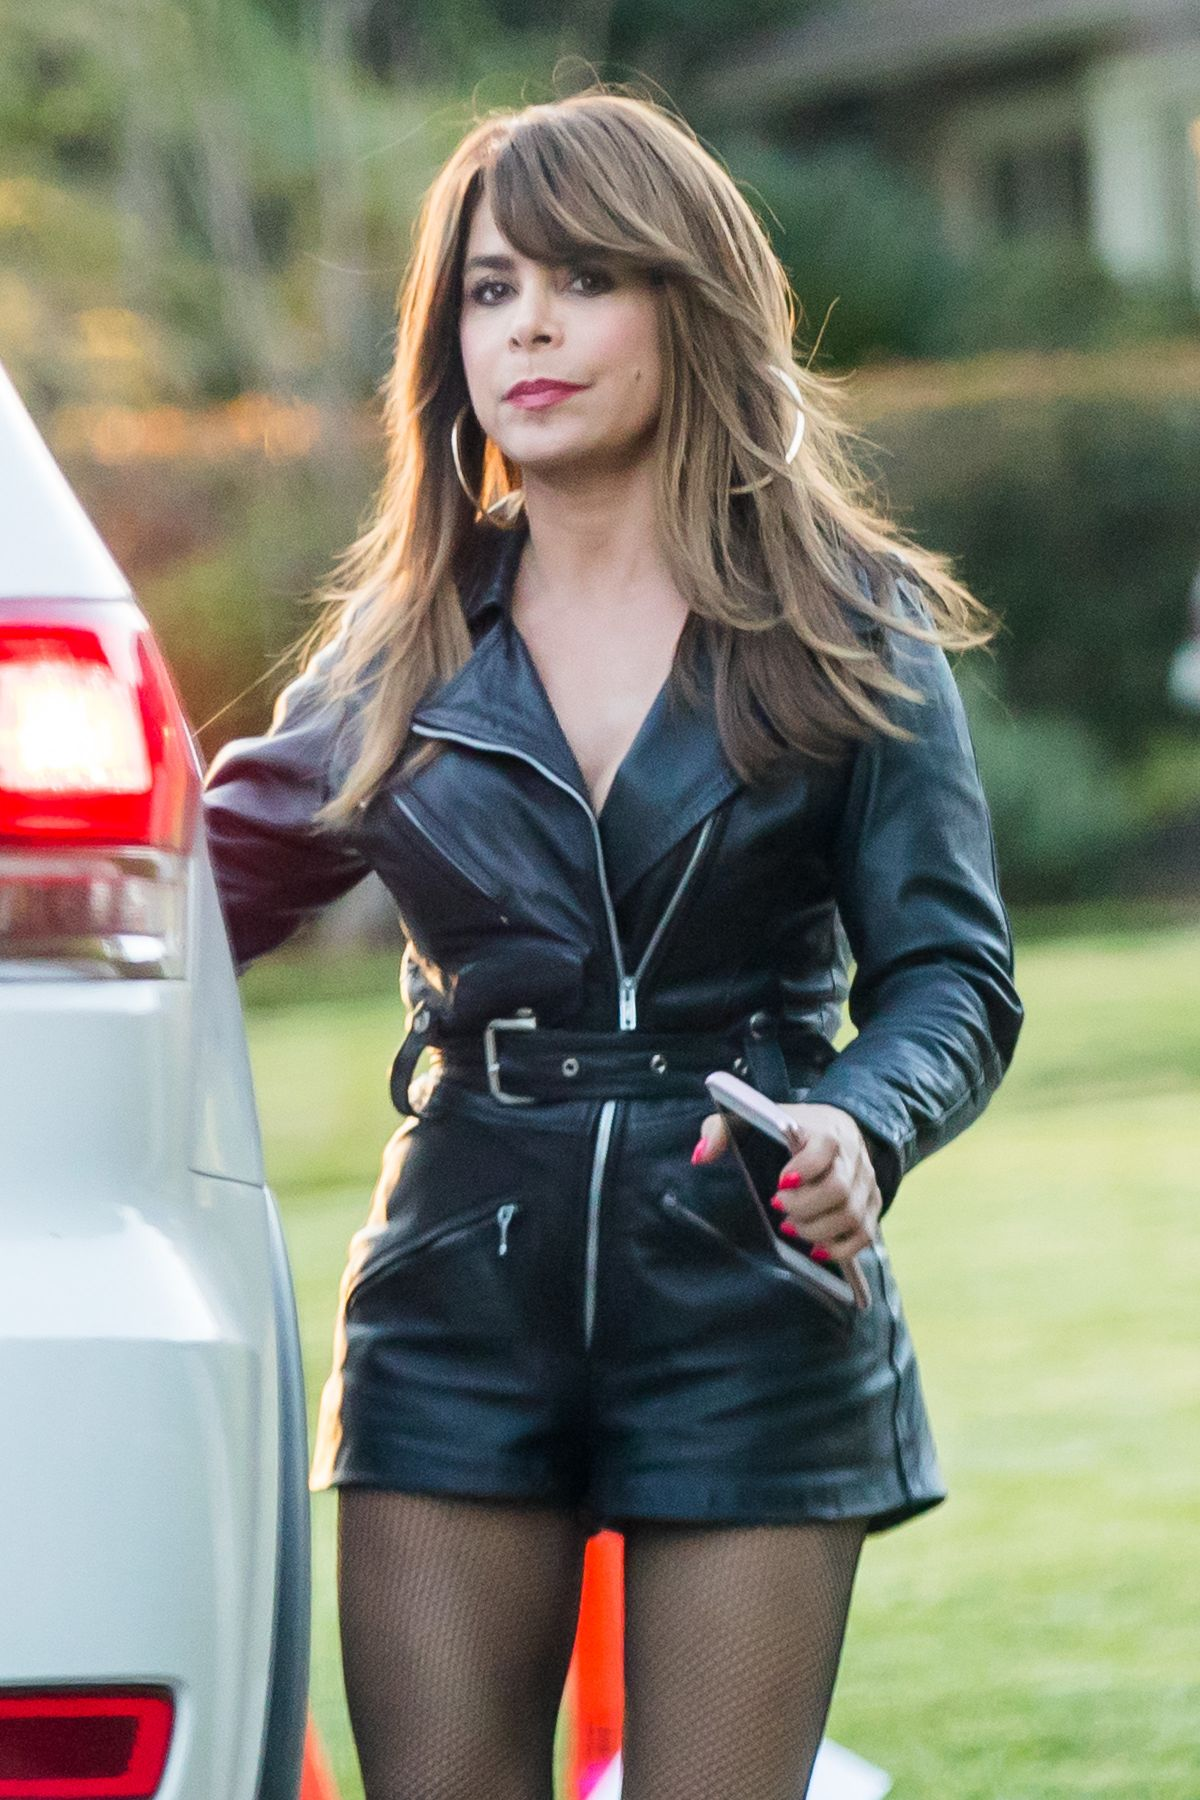 PAULA ABDUL on the Set of Untitled Kourtney Kang Project in Los Angeles 03/07/2017